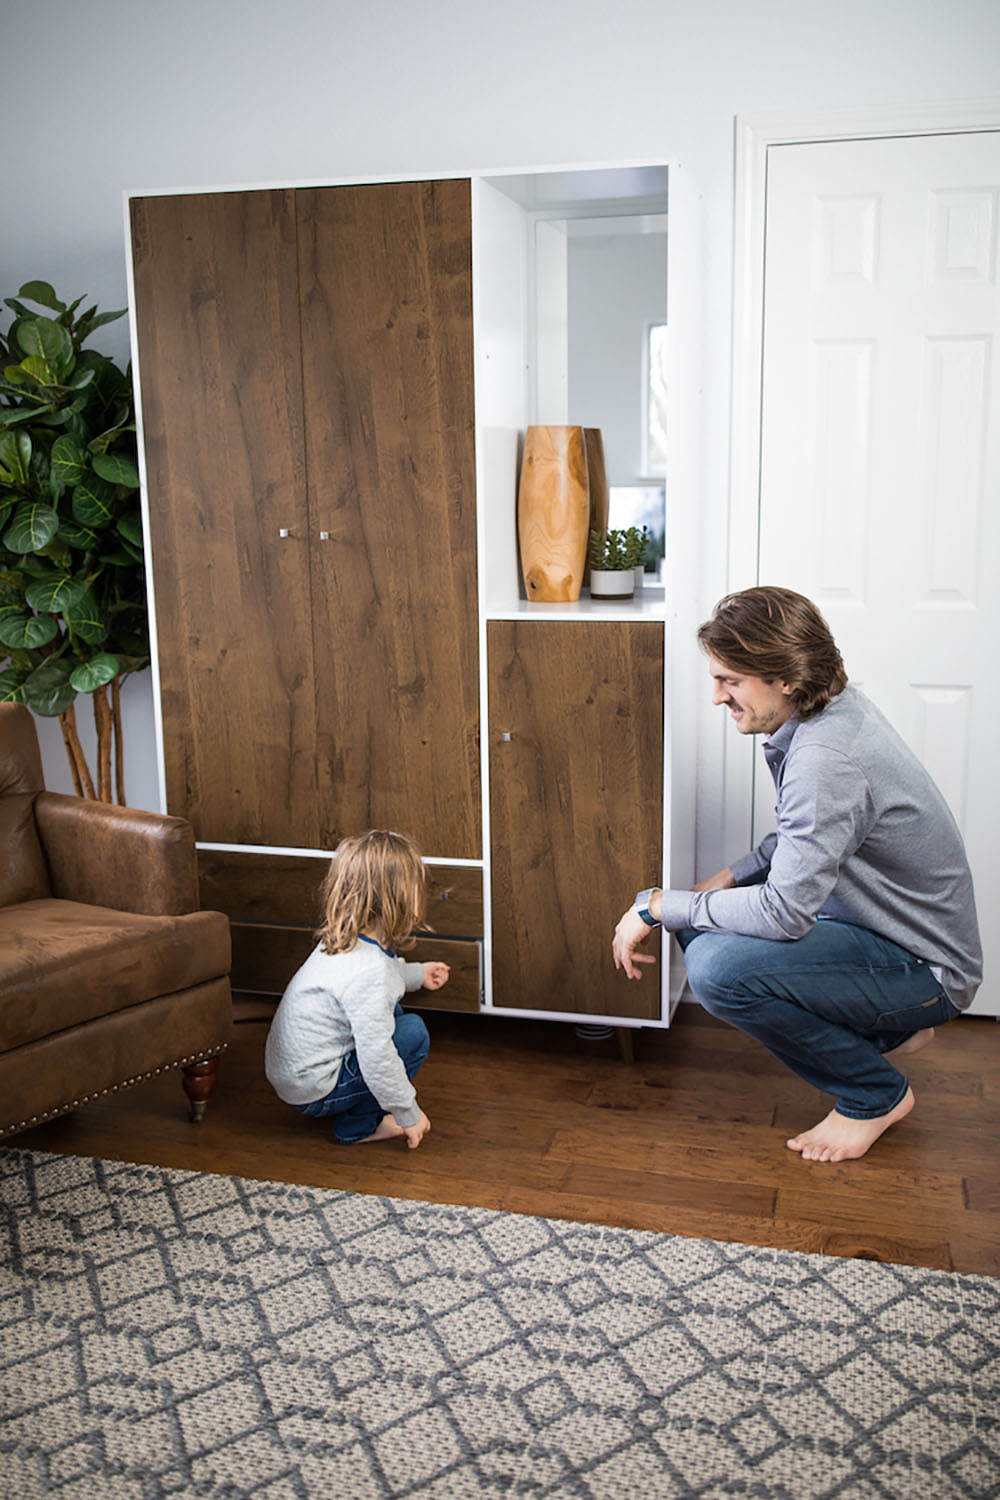 A person and child squatting on the floor looking at a cabinet